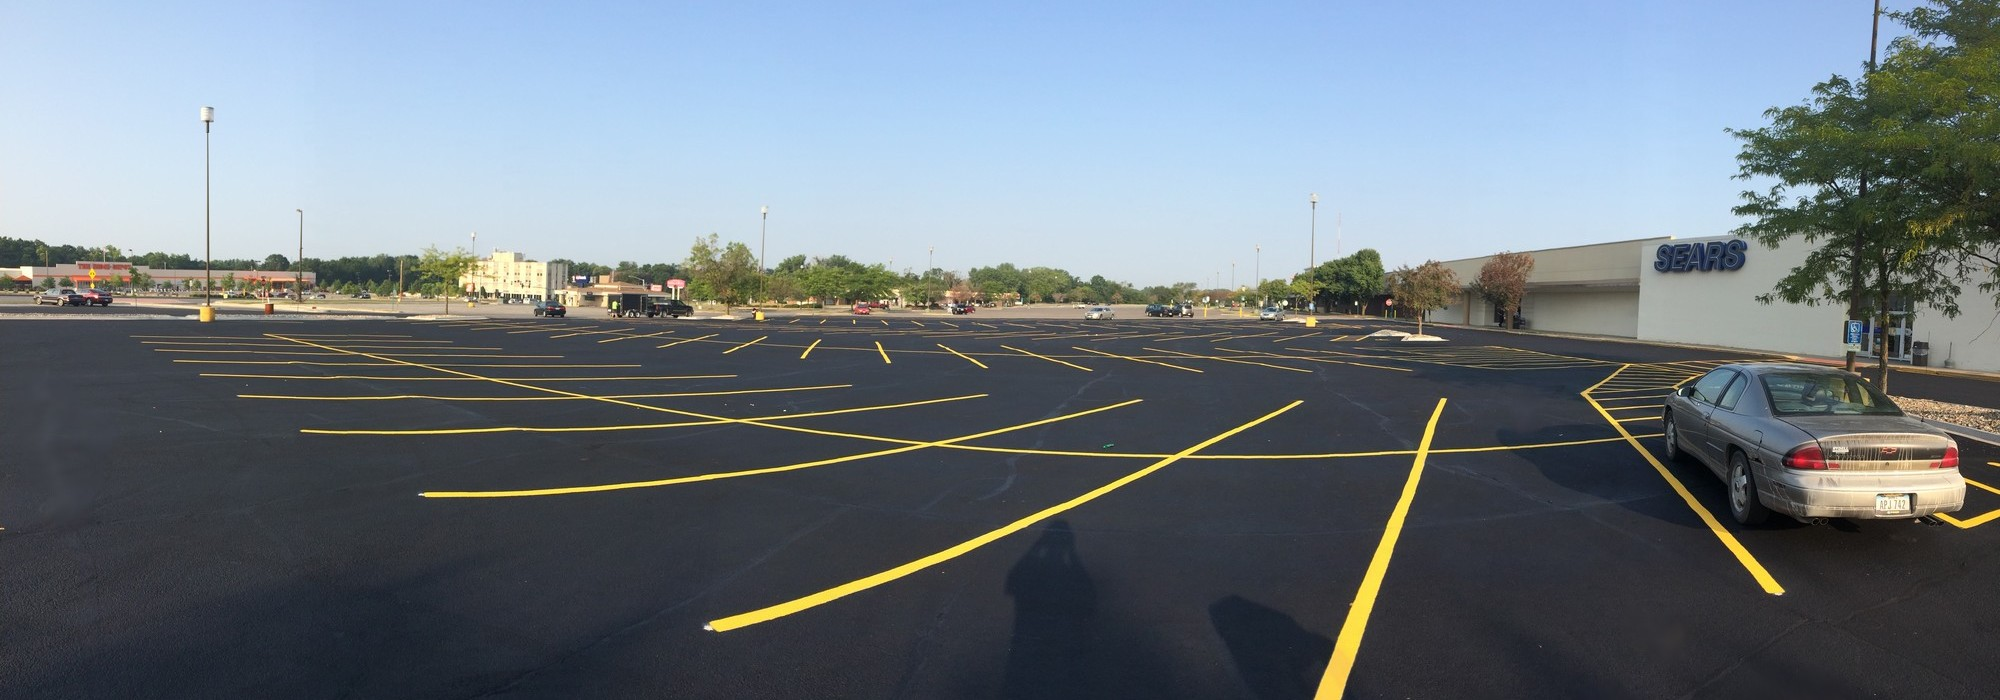 slide-parking-lot-striping-sears-pro-line-iowa